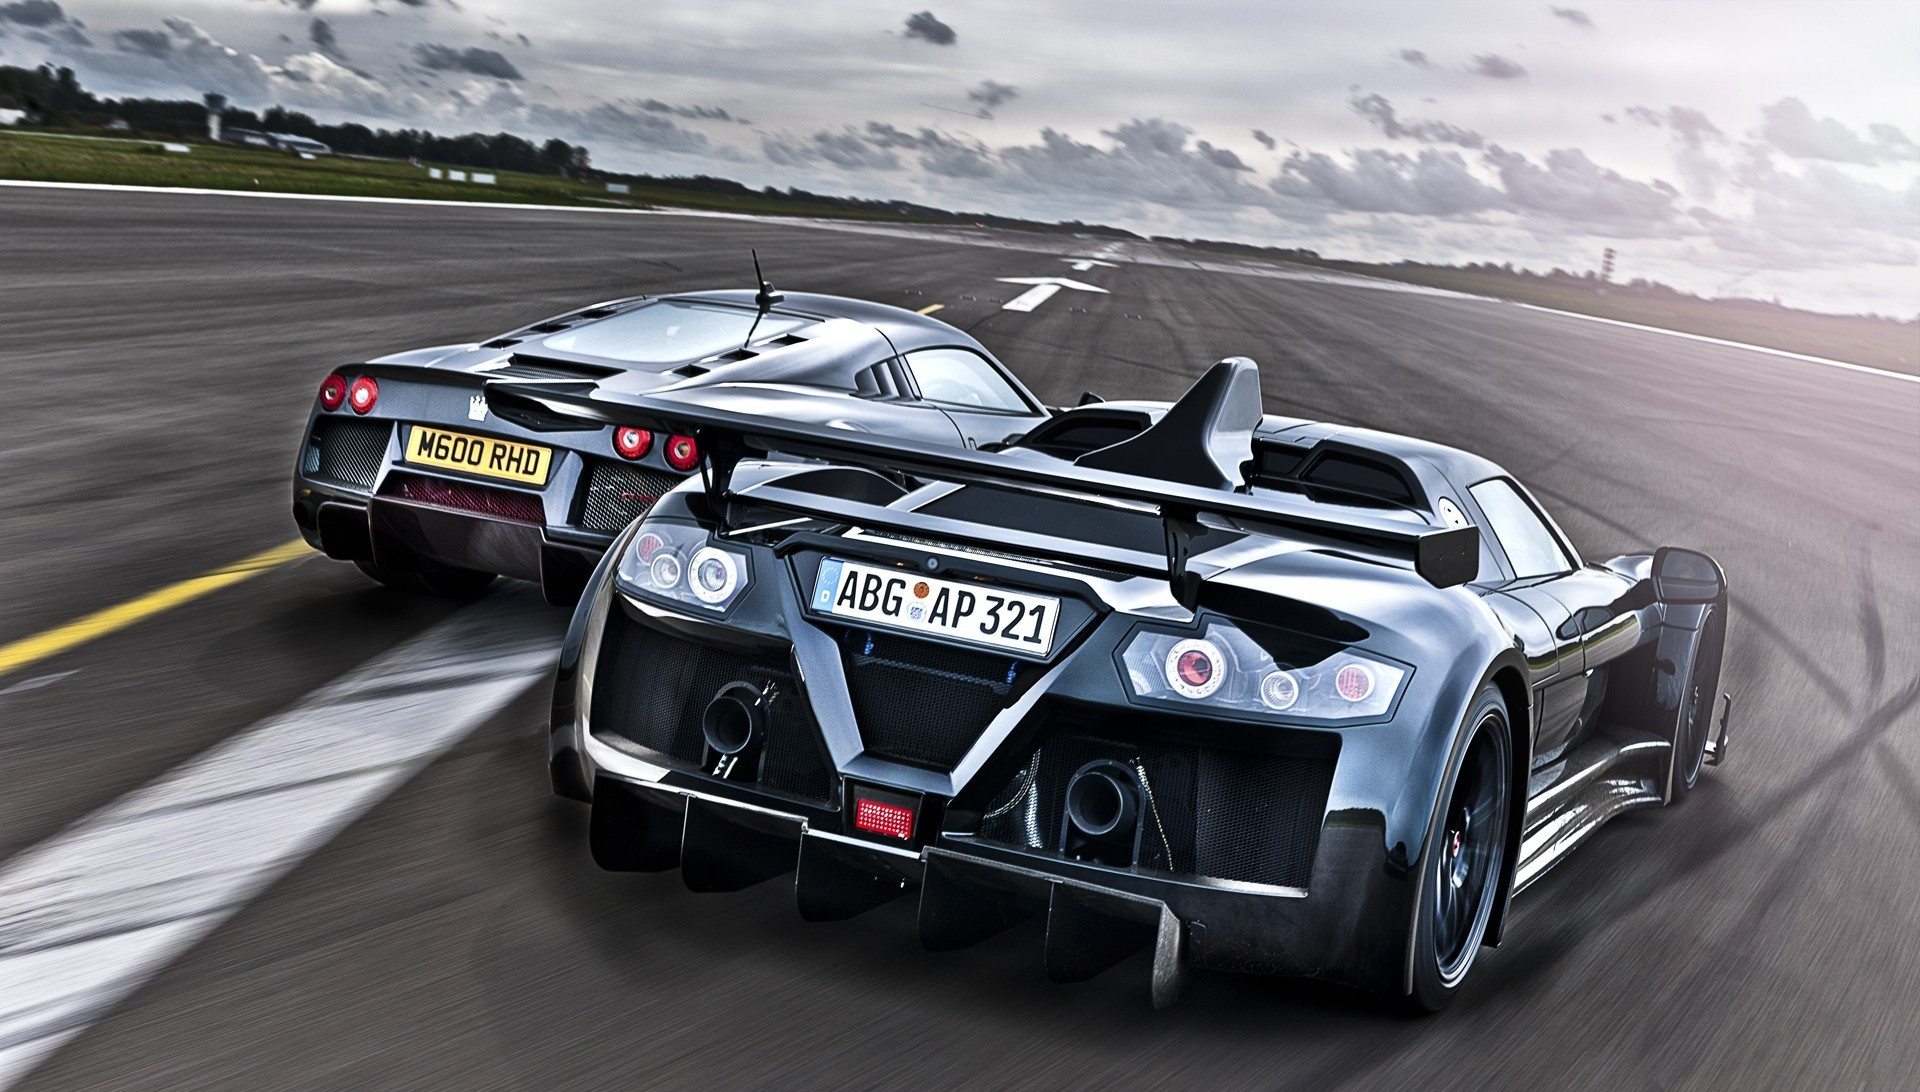 racing cars on track wallpaper